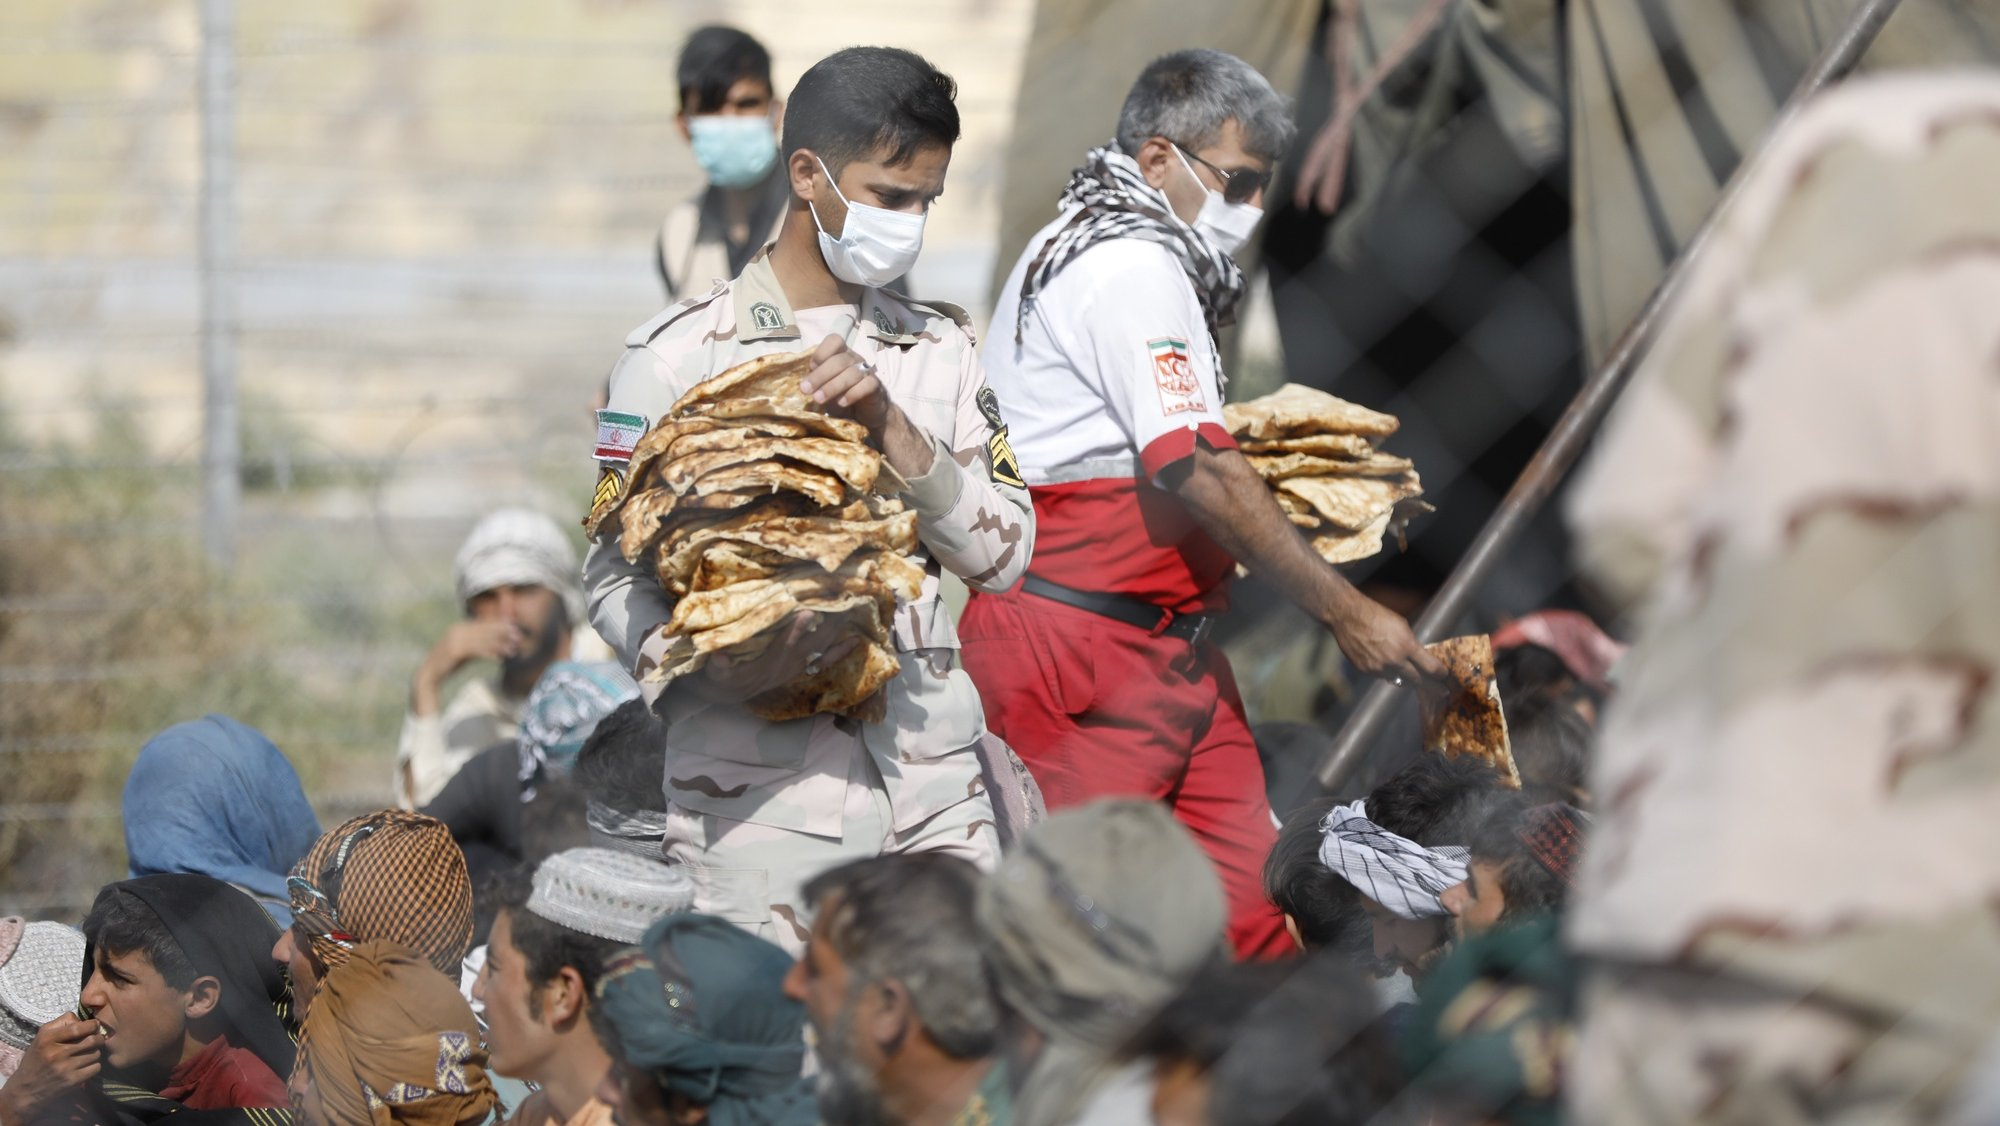 epa09420825 A handout photo made available by Iranian Red Crescent shows an Iranian soldier distributes foods among Afghan Afghan refugee gather in Iran-Afghanistan border in Sistan-Blochestan province, south-eastern Iran, 16 August 2021 (issued 19 August 2021). According to Iranian Red Crescent official website, after Taliban took-over the rule in Afghanistan, some Afghan refugees fled to the Iranian borders hoping to enter to Iran. Reports state refugees were sent back to Afghanistan the next day after getting food and help.  EPA/MOHAMMAD JAVADZADEH HANDOUT  HANDOUT EDITORIAL USE ONLY/NO SALES